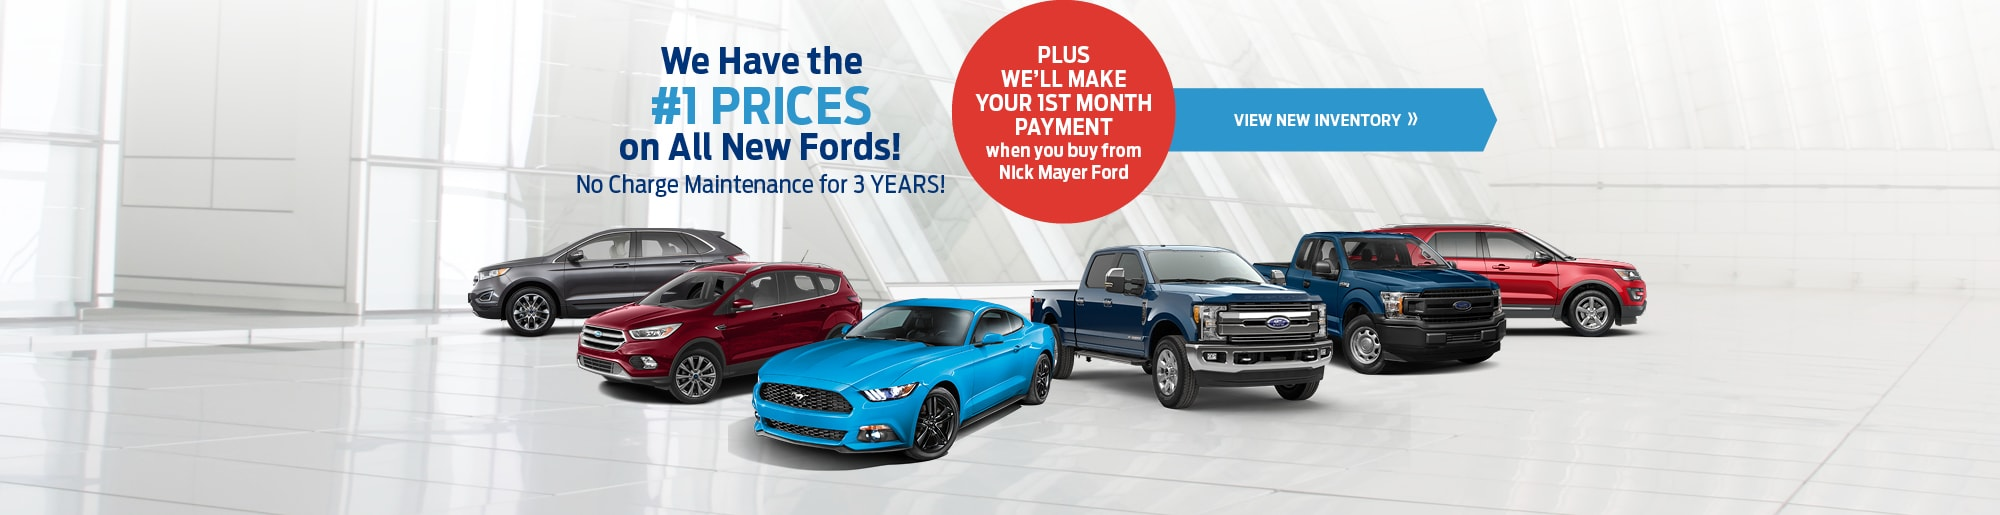 New Inventory Specials Cleveland Ohio Nick Mayer Ford Lincoln